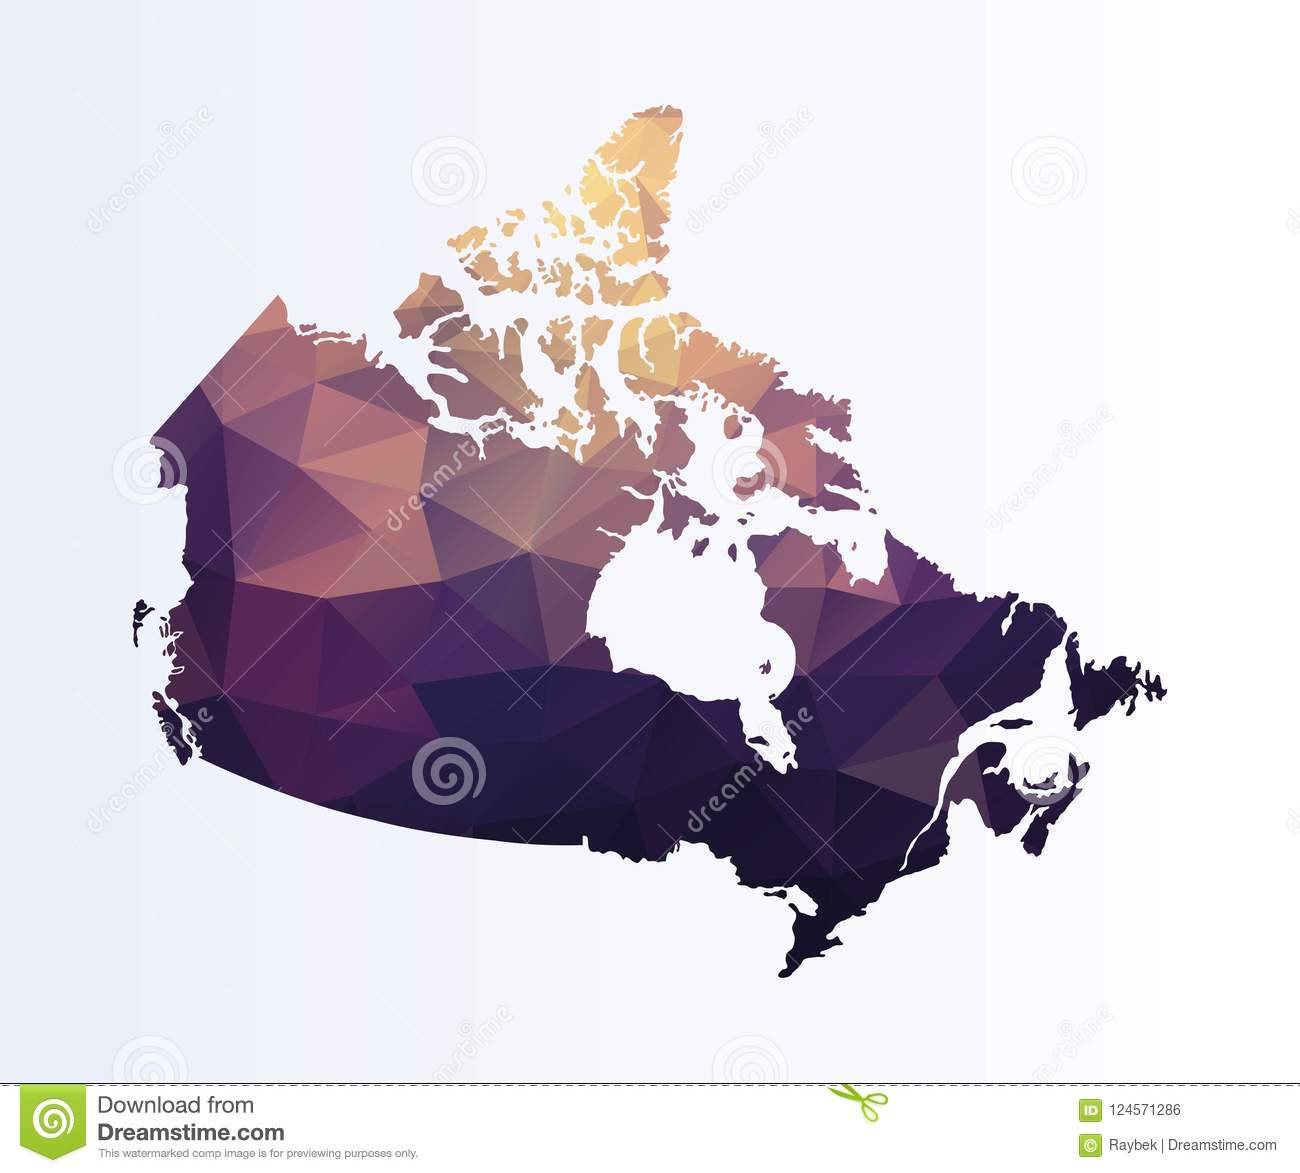 Colored Map Of Canada.Polygonal Map Of Canada Stock Illustration Illustration Of Isolated